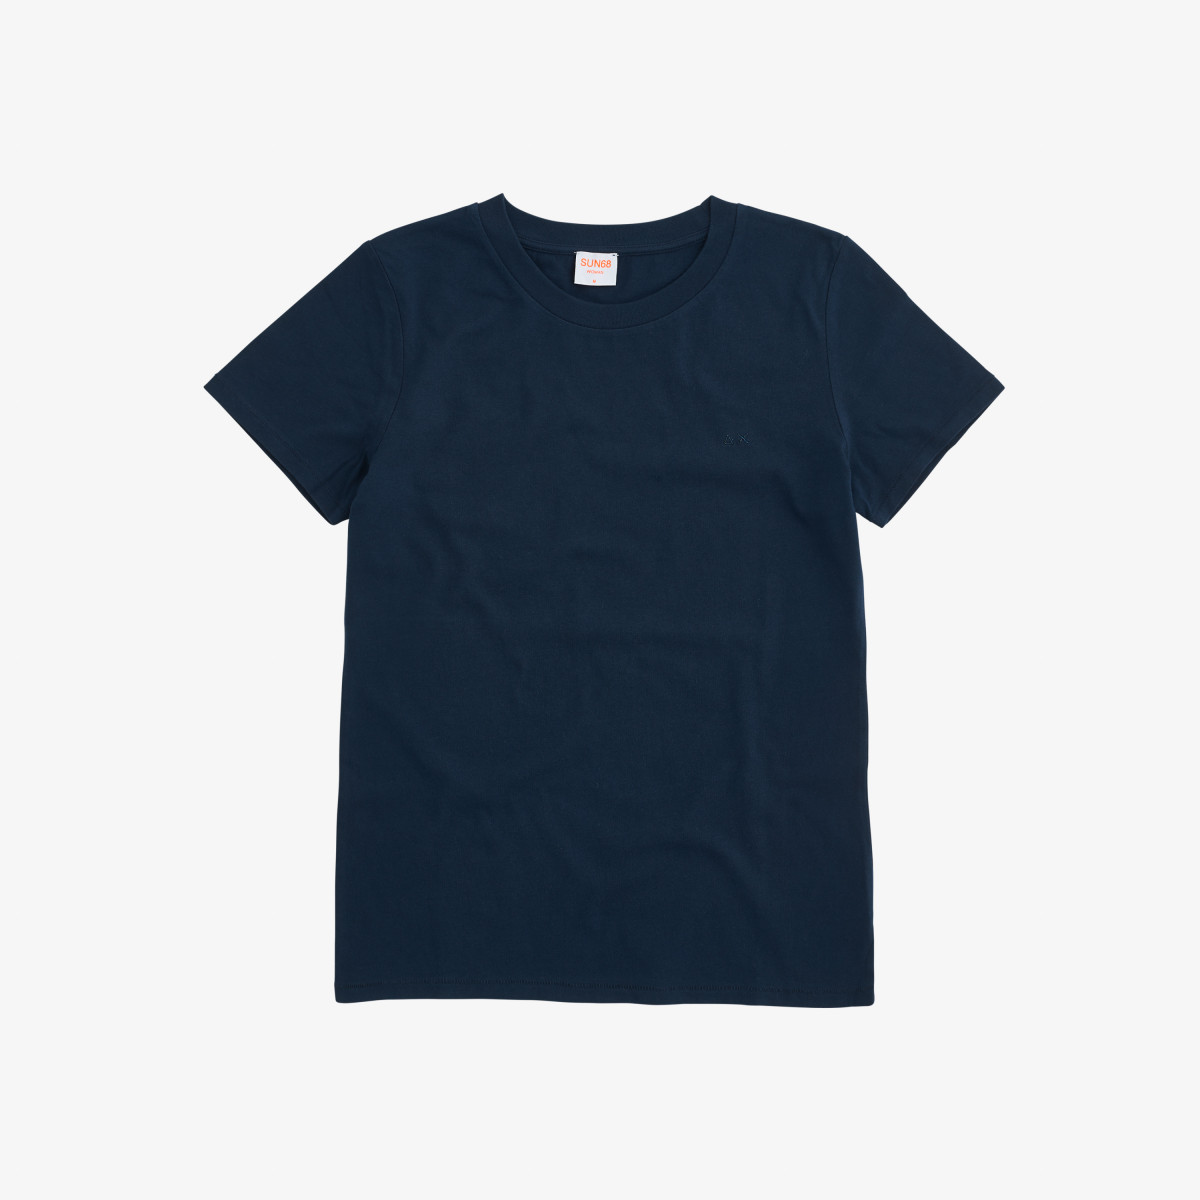 ROUND NECK T-SHIRT S/S NAVY BLUE